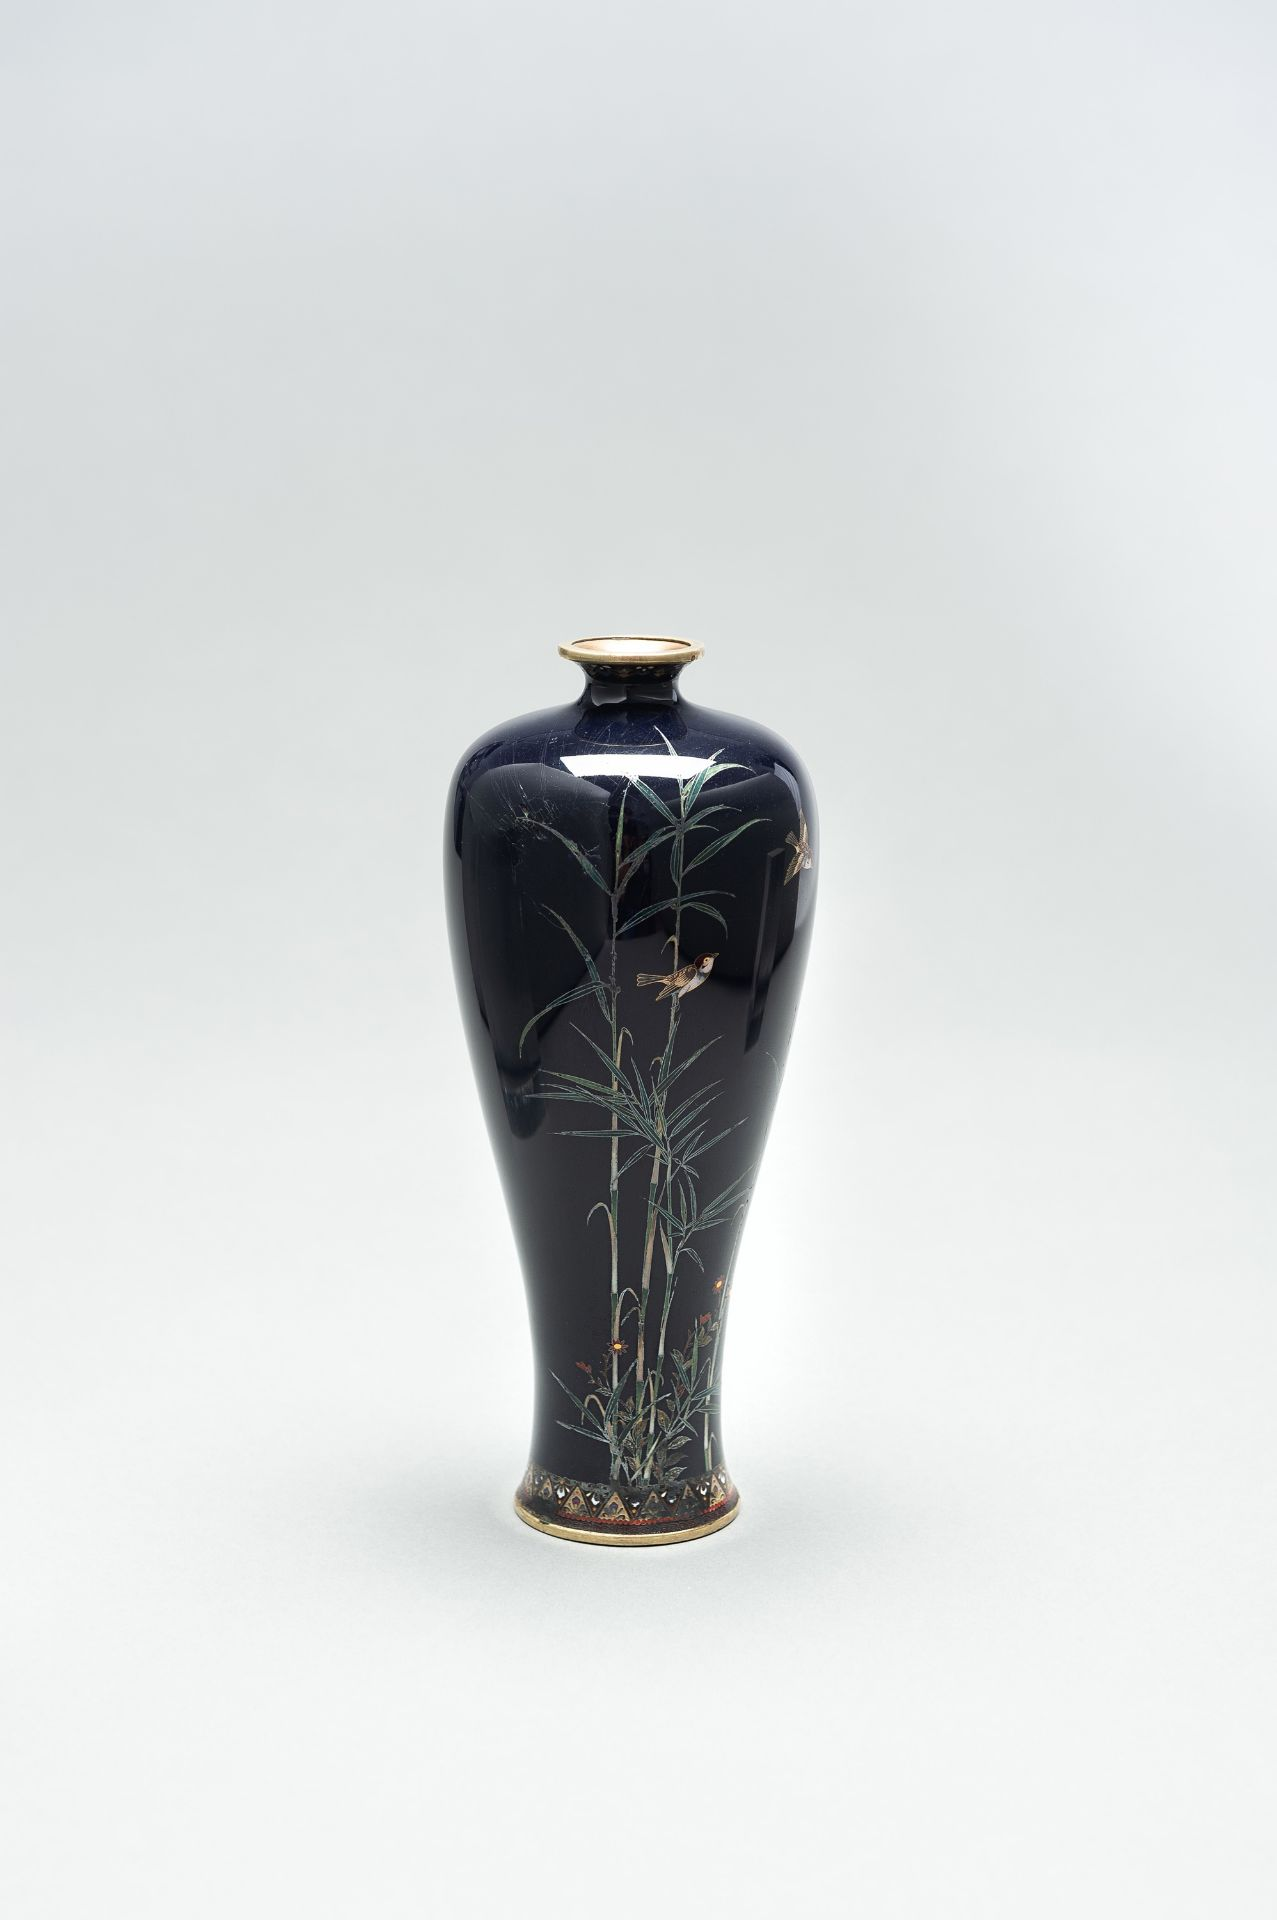 A CLOISONNE ENAMEL VASE WITH BAMBOO AND BIRDS - Image 7 of 8